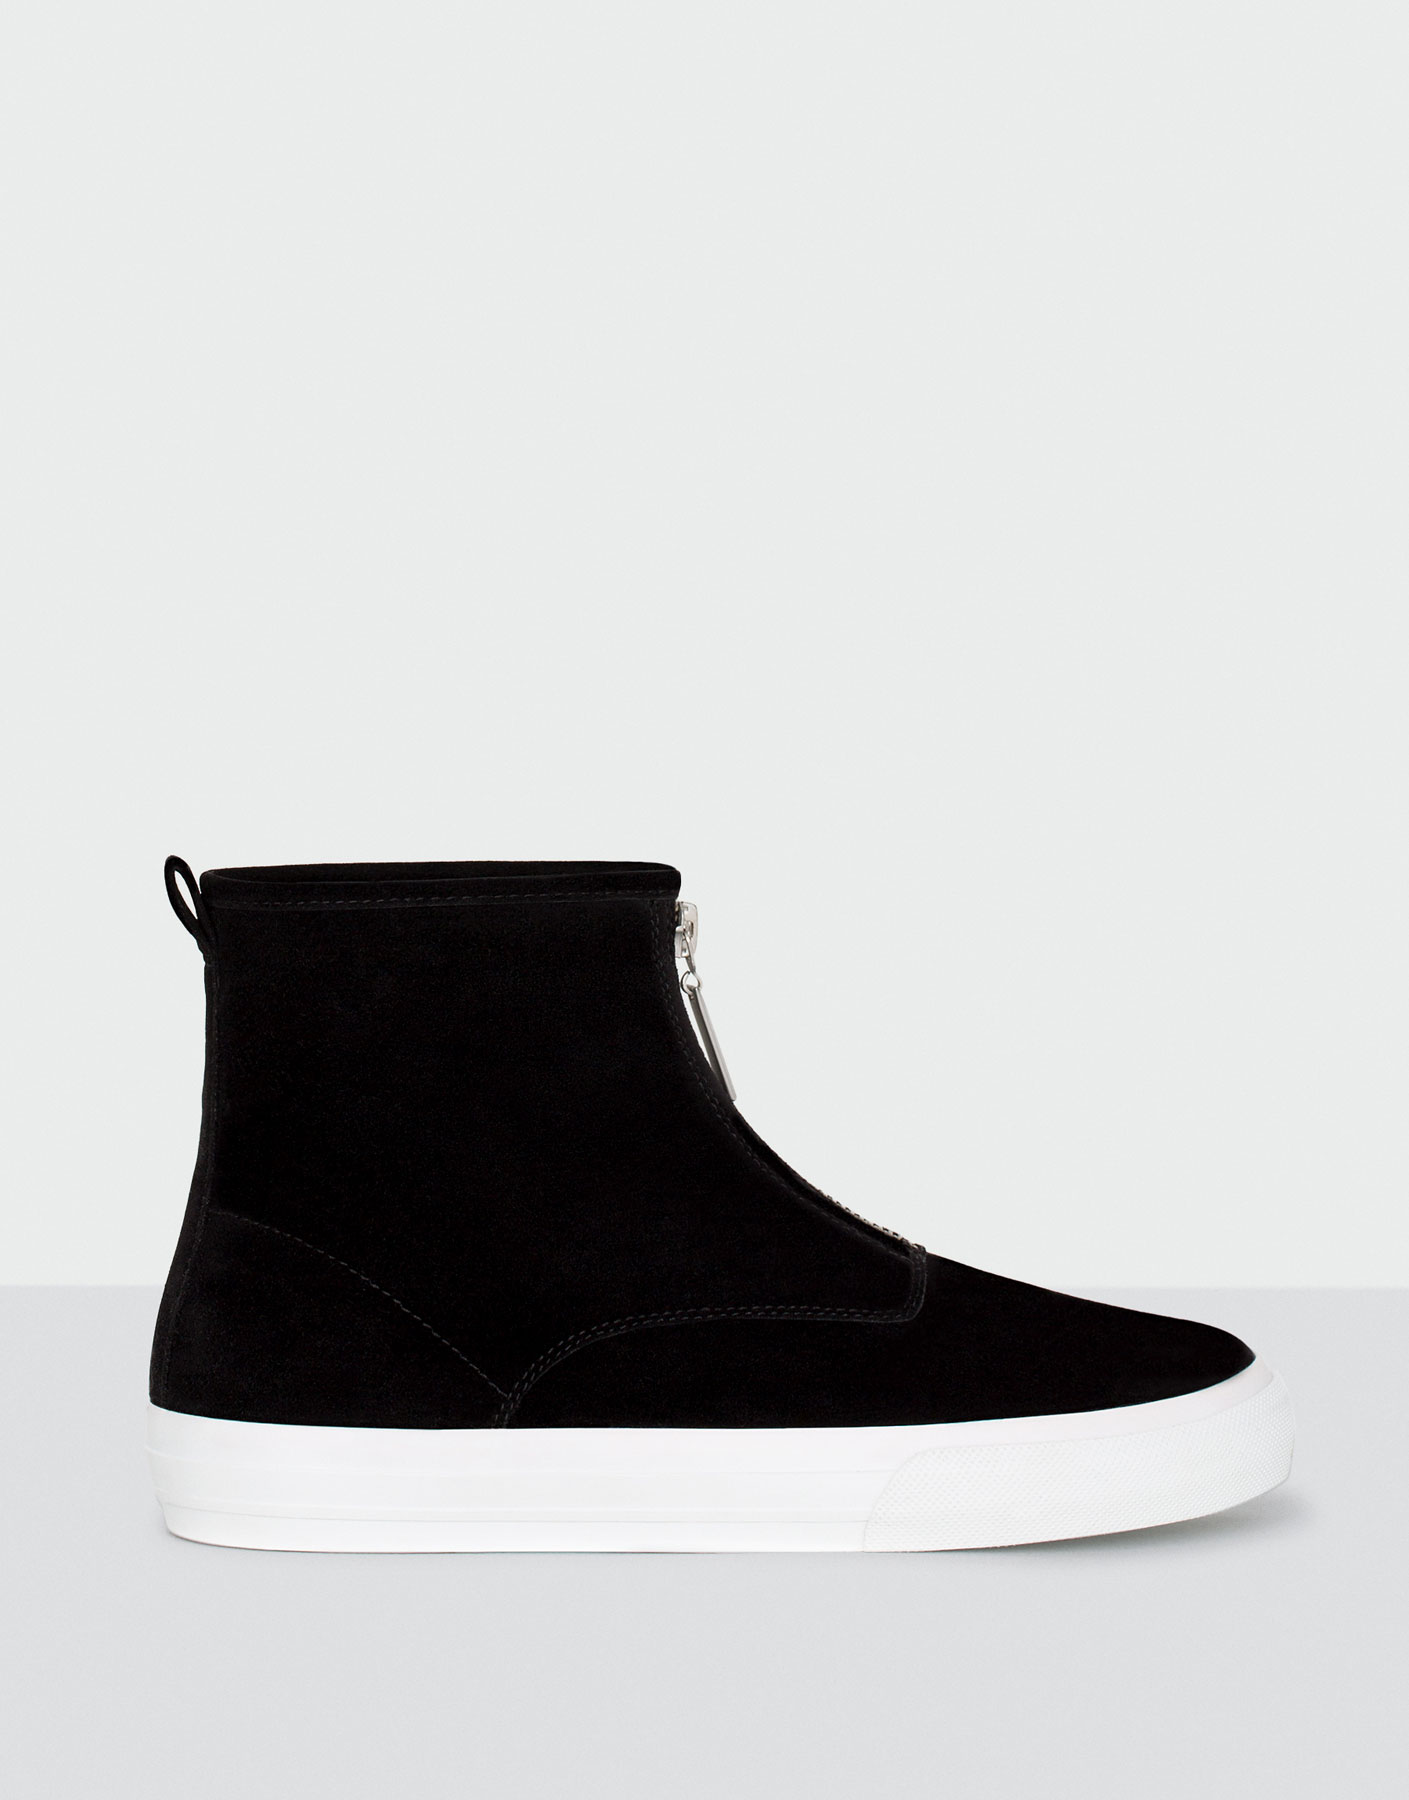 Zipped high-top sneakers